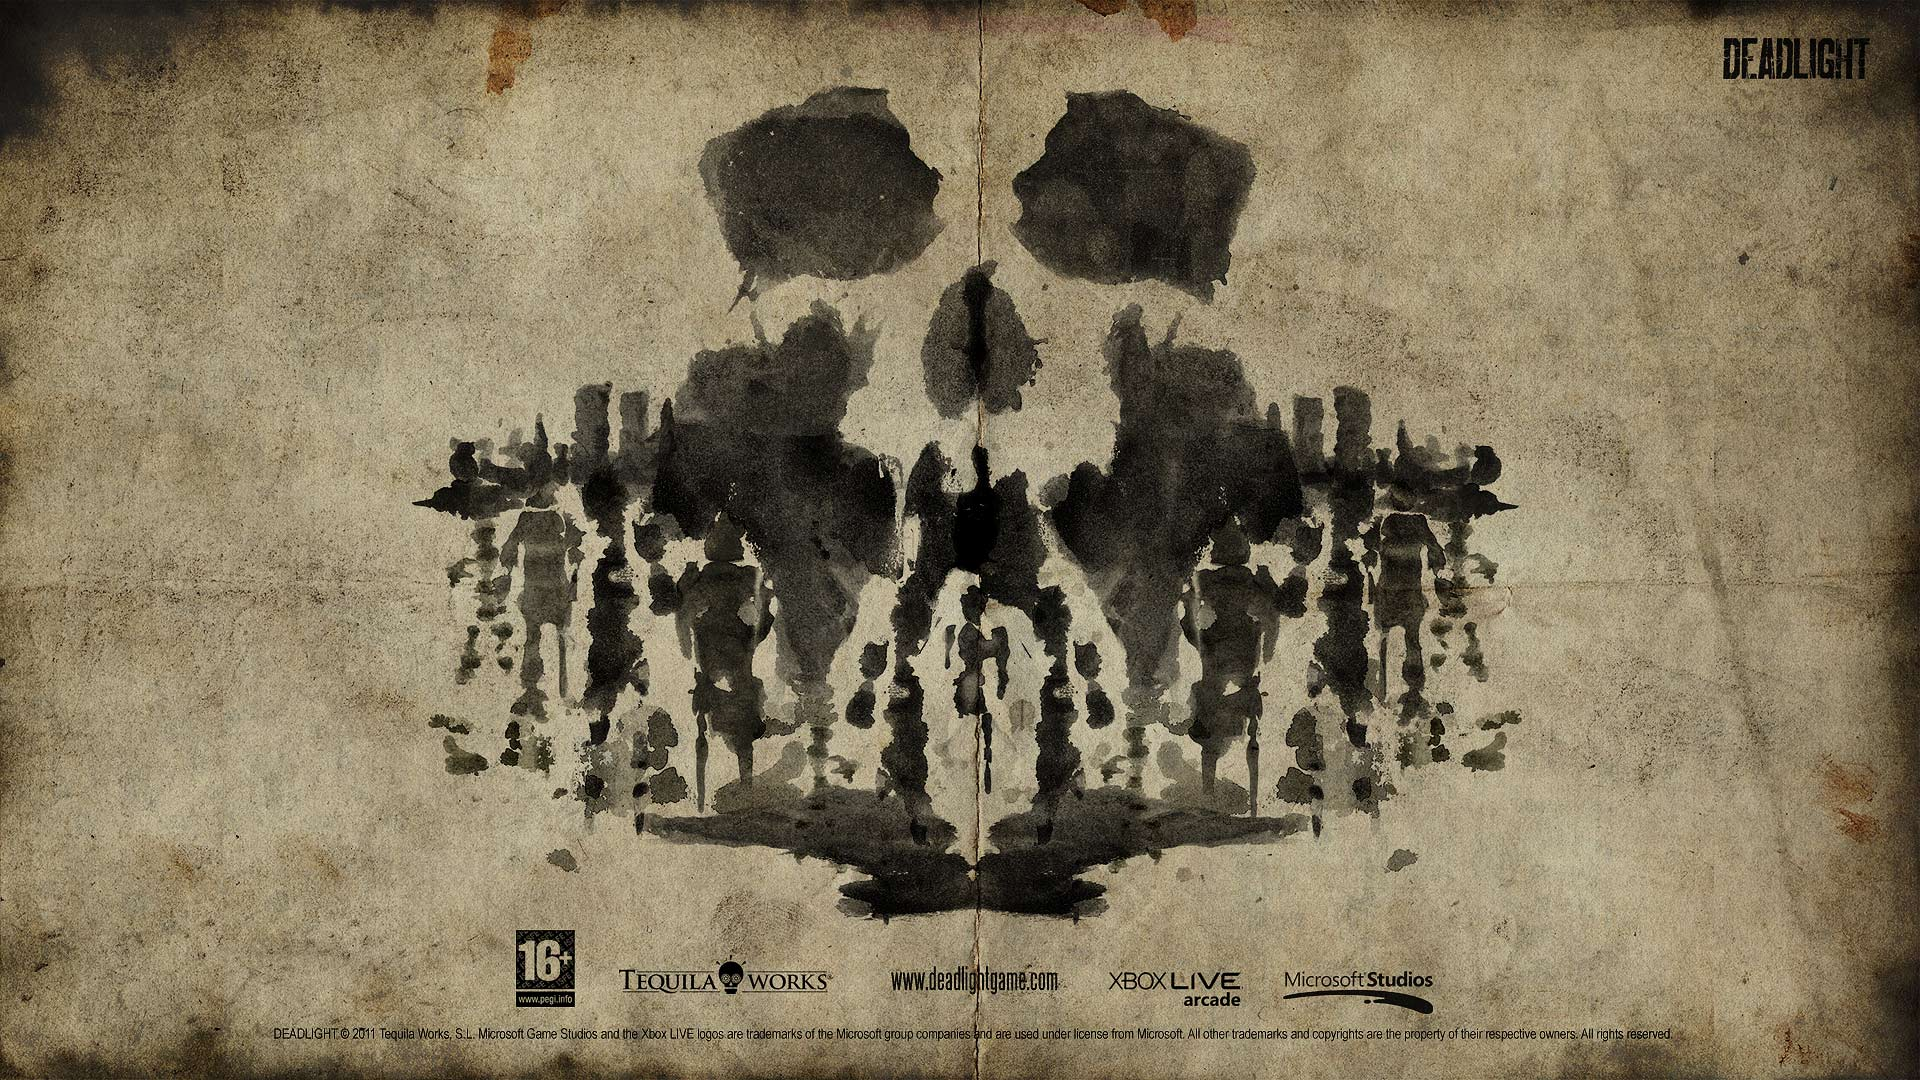 deadlight_wallpaper_skull_1920x1080